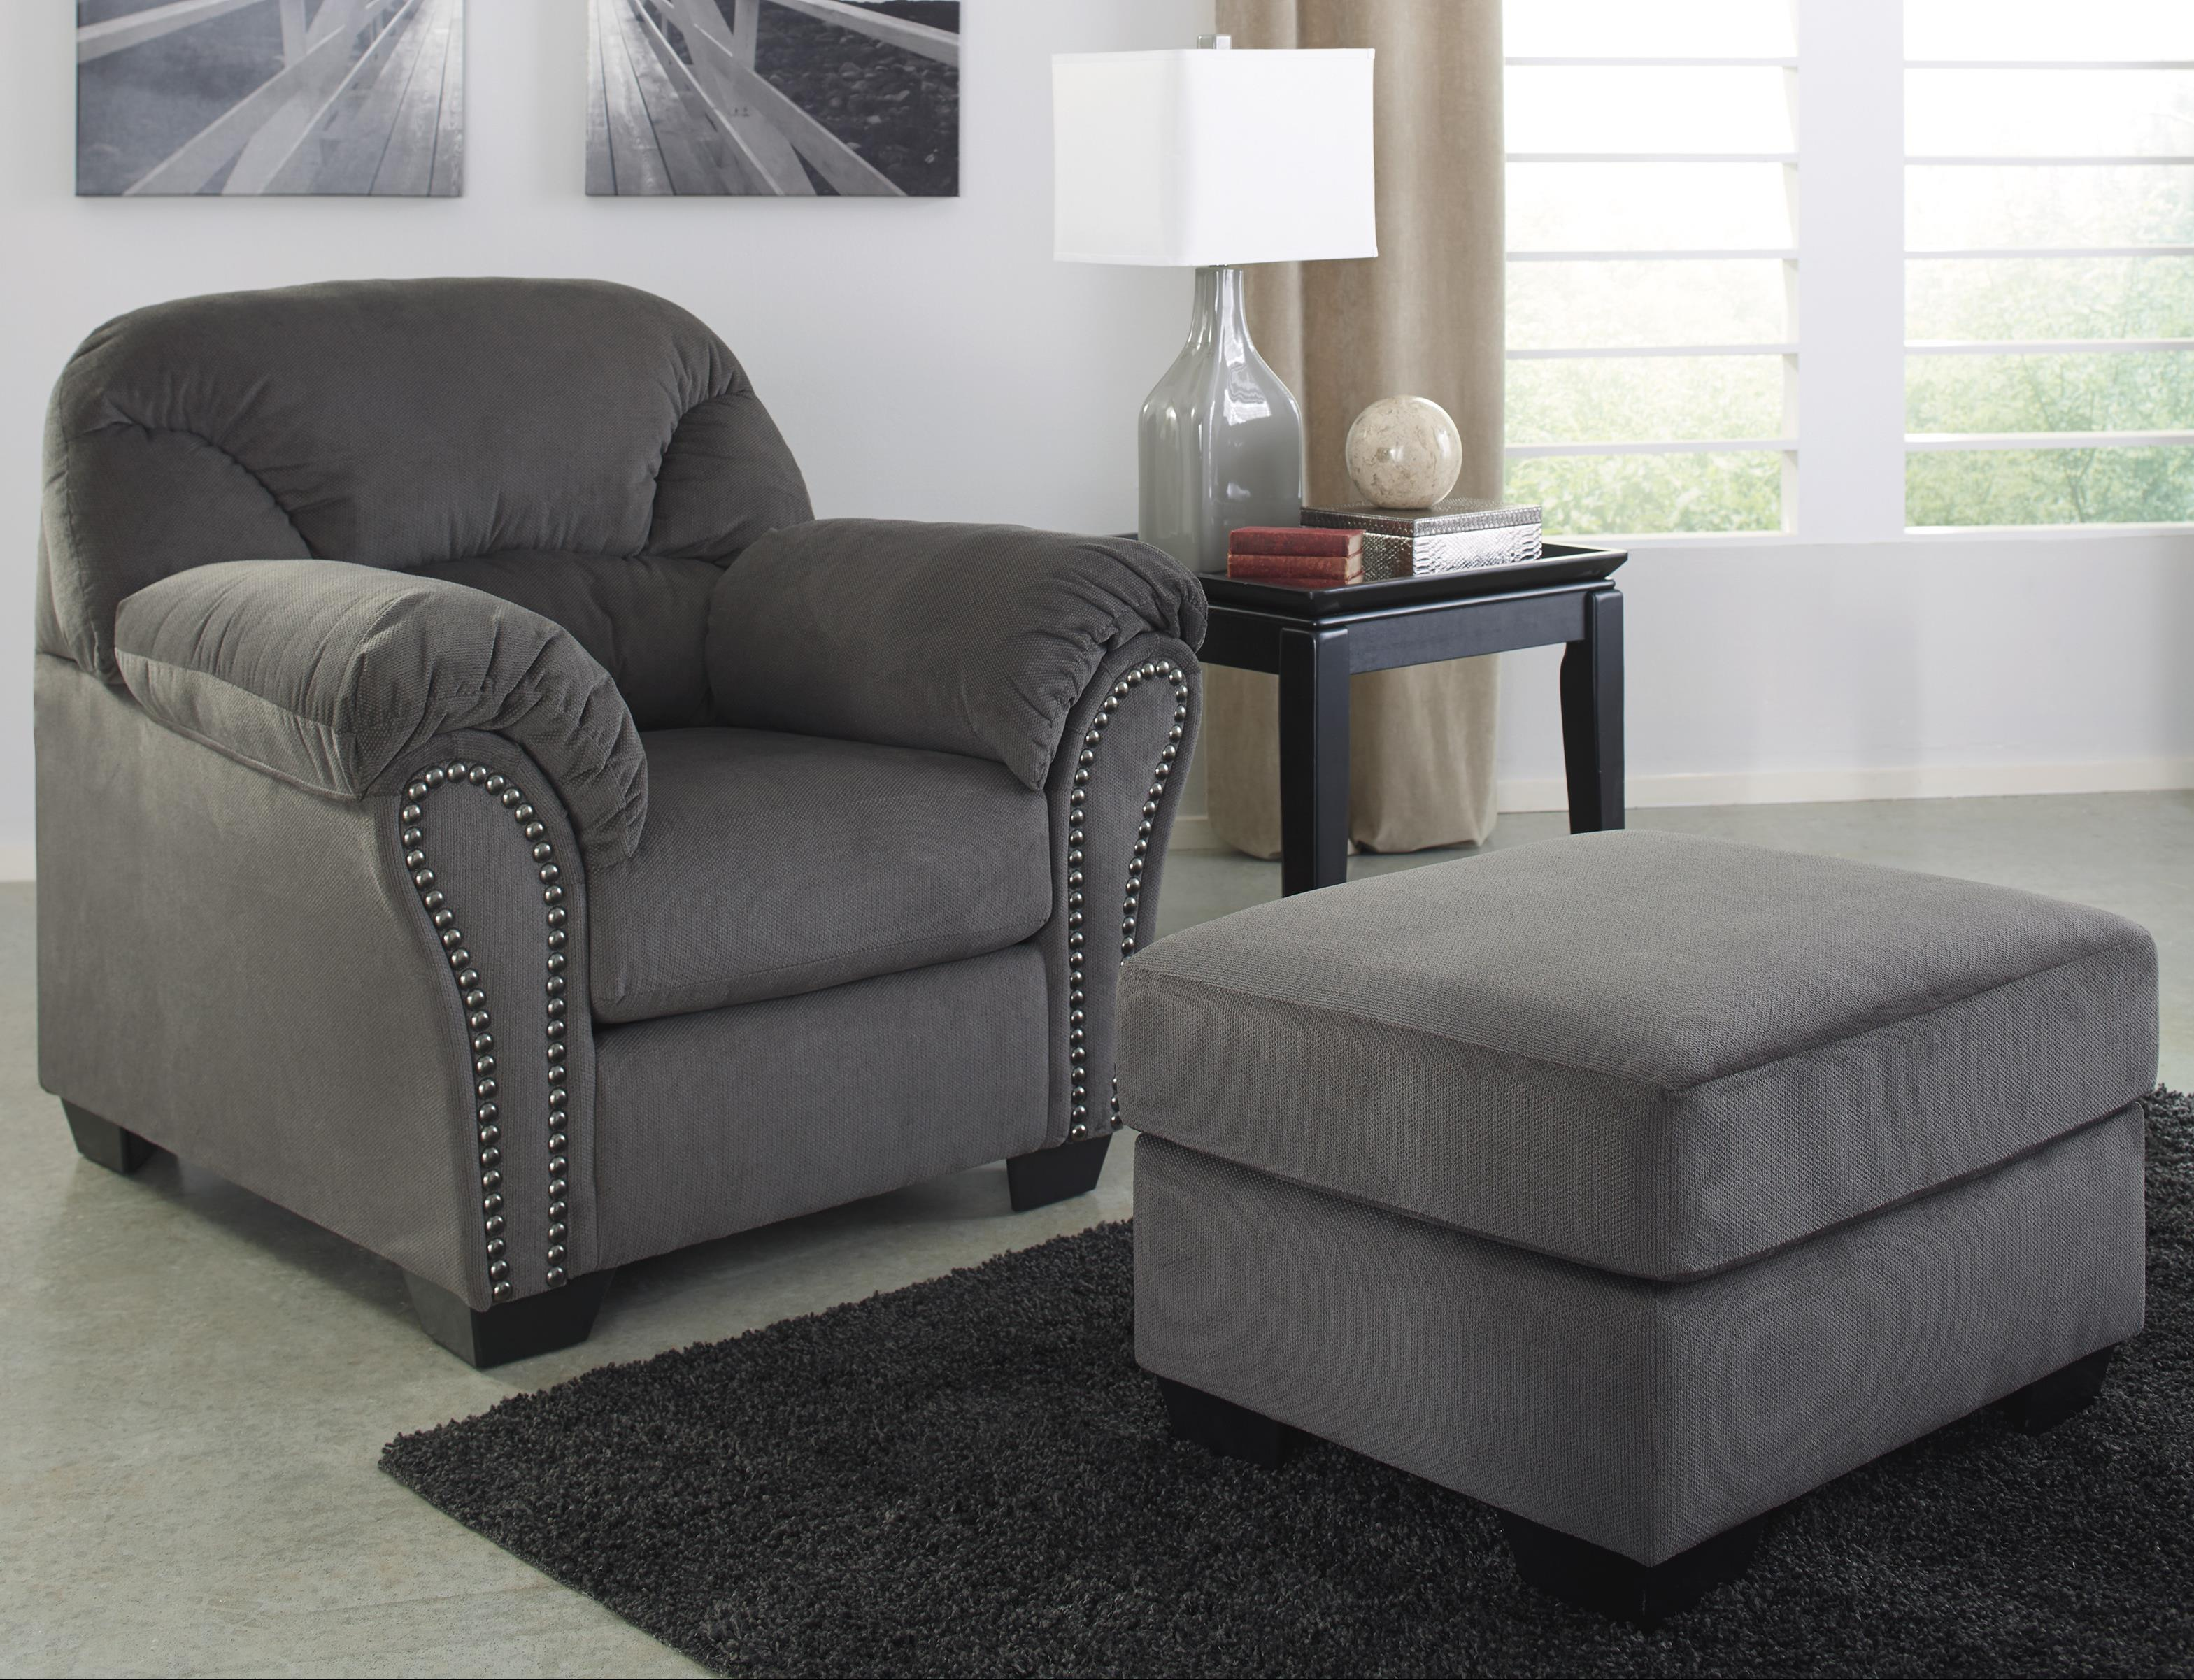 Signature Design by Ashley Kinlock Chair & Ottoman - Item Number: 3340020+14